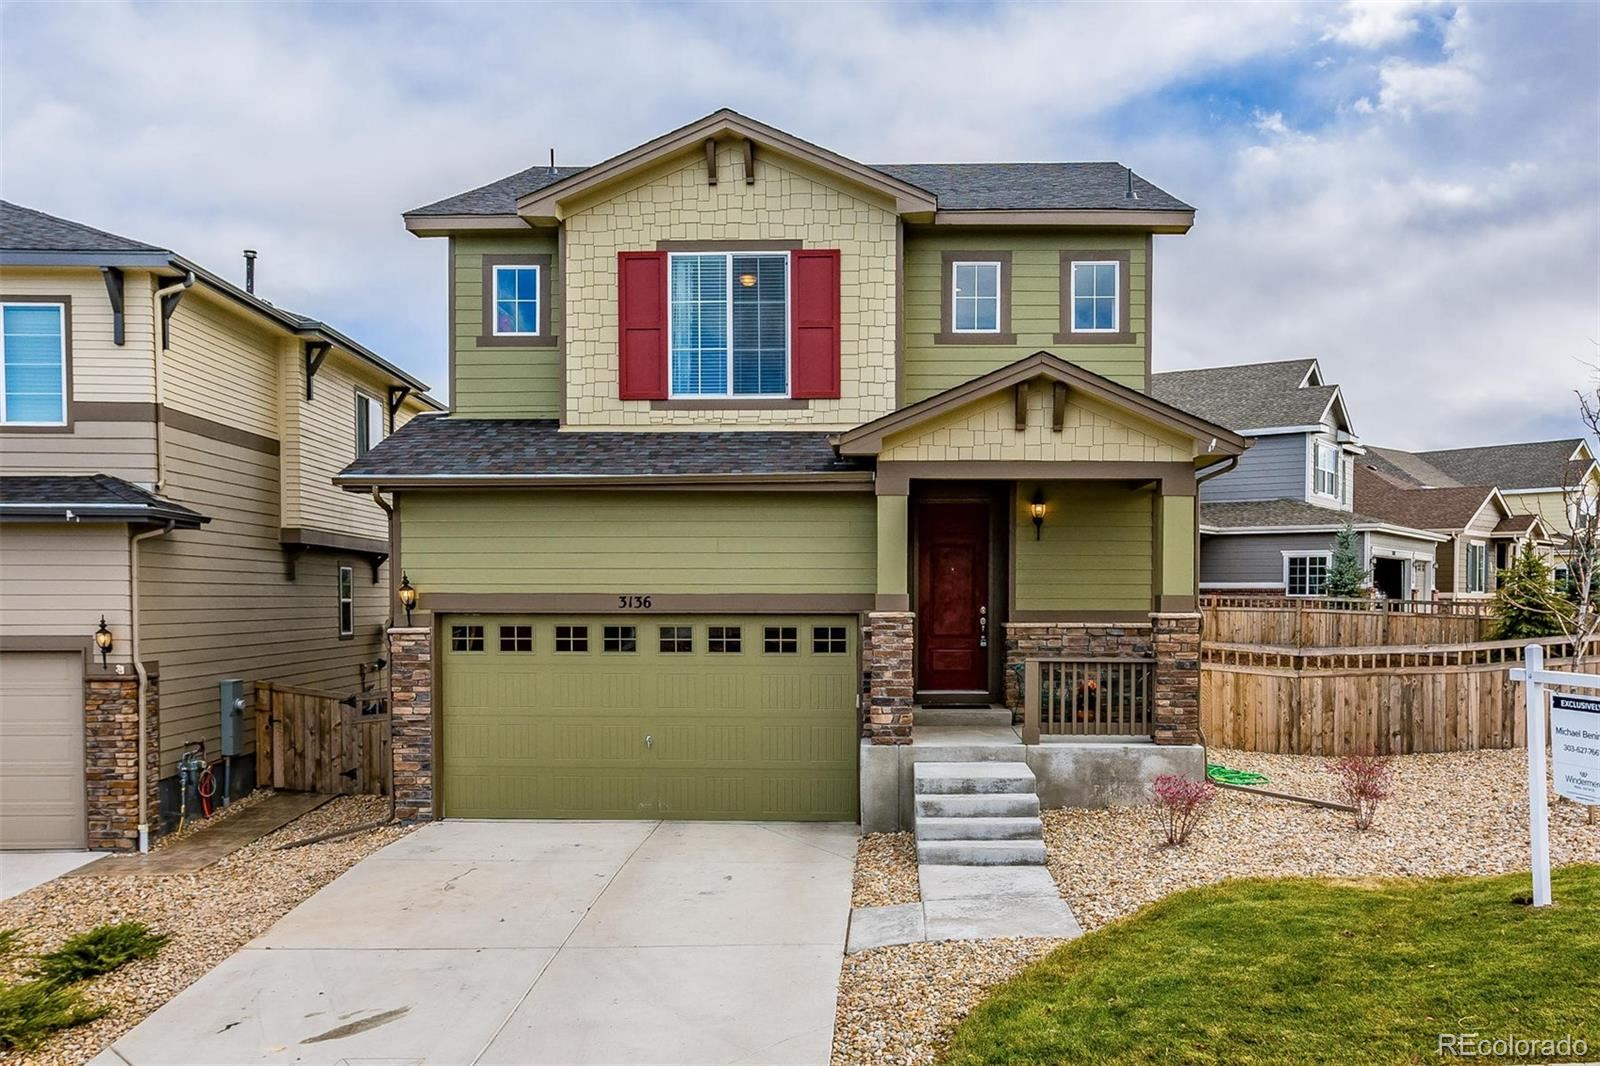 3136 Youngheart Way, Castle Rock, CO 80109 - #: 4605270